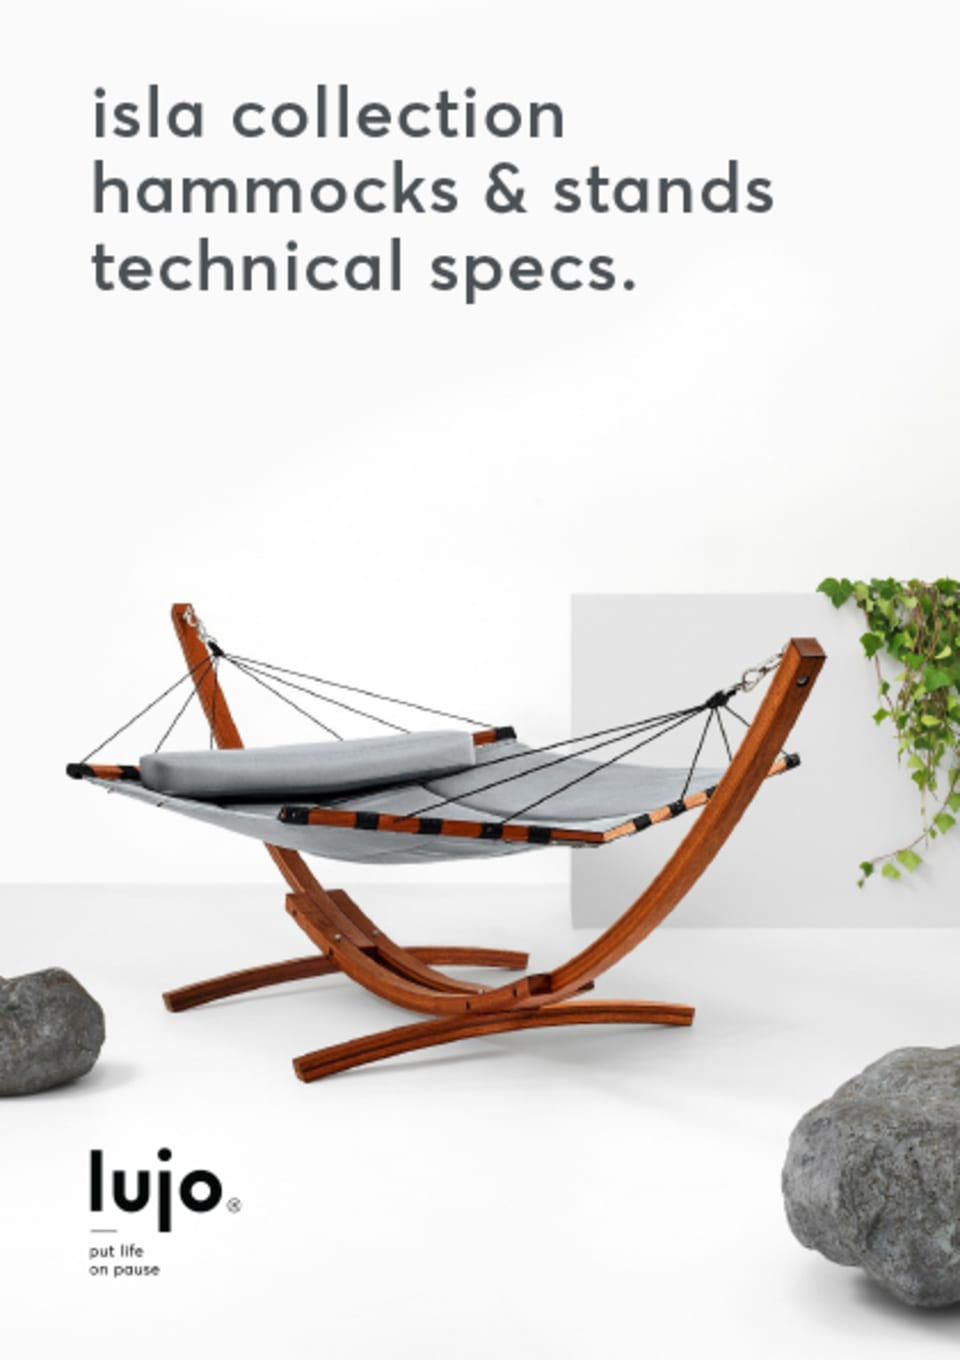 https://cdn.accentuate.io/4371646578786/11726231994466/Lujo_Technical-Specs_Isla-Hammocks-v1583358367401.pdf